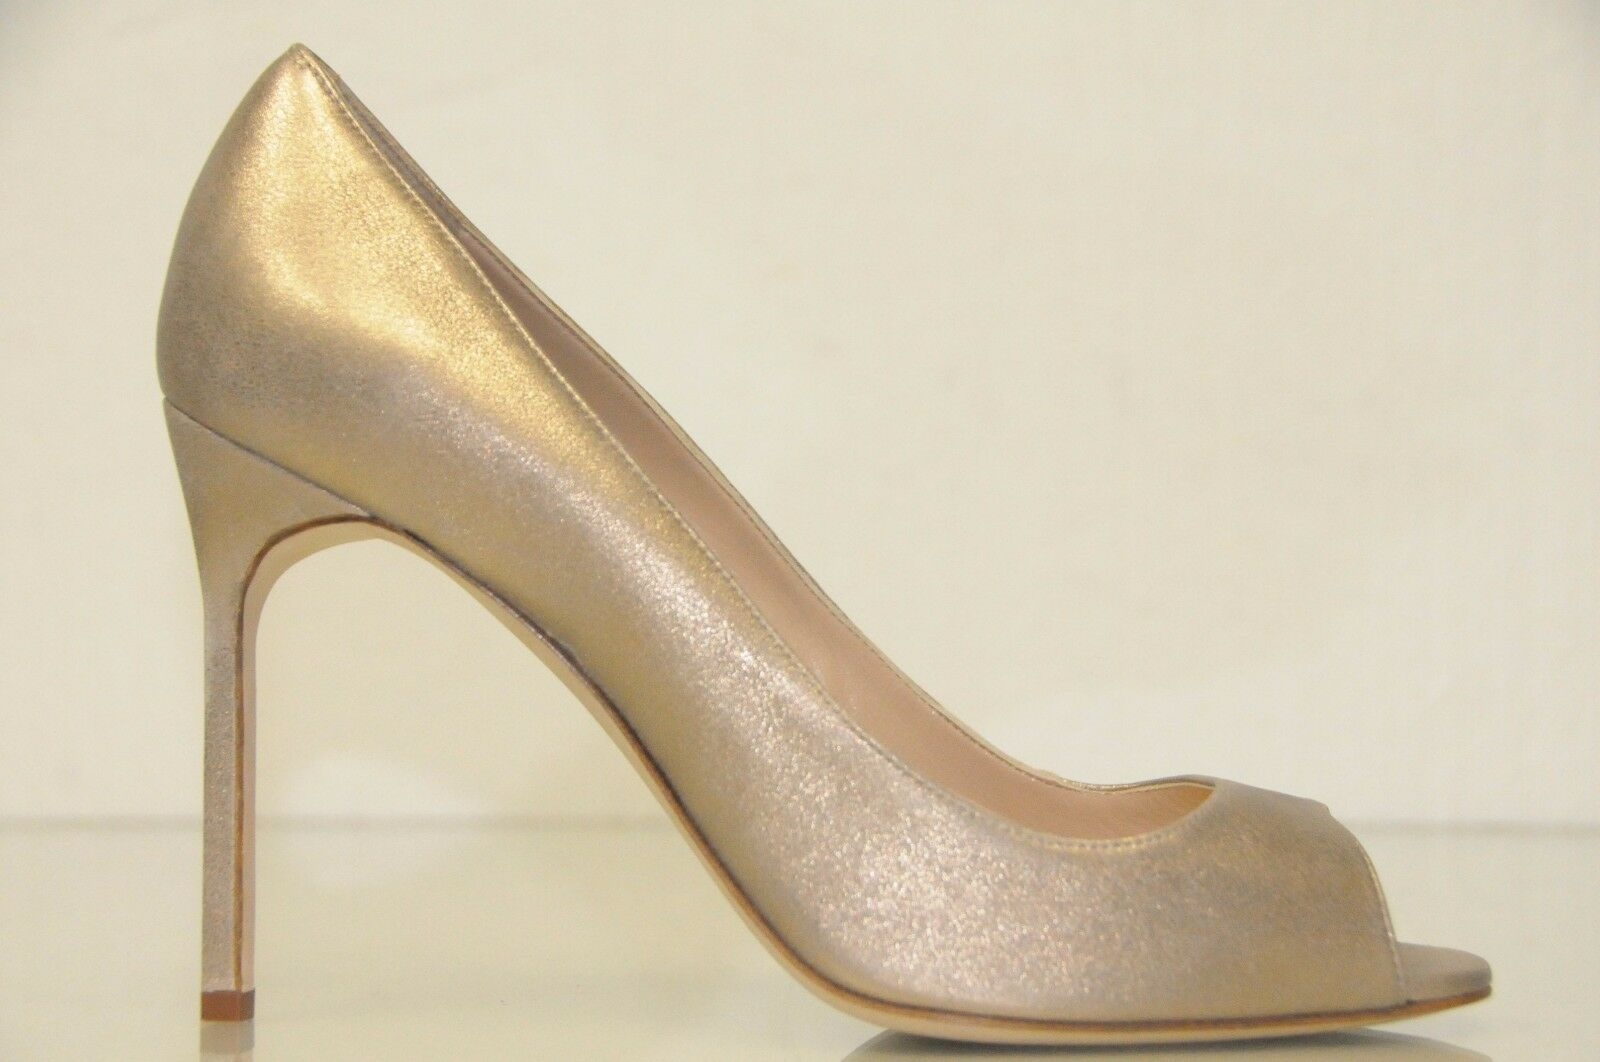 New Manolo Blahnik Shimmery gold suede d leather Open Toe shoes Pumps BB 40 41.5